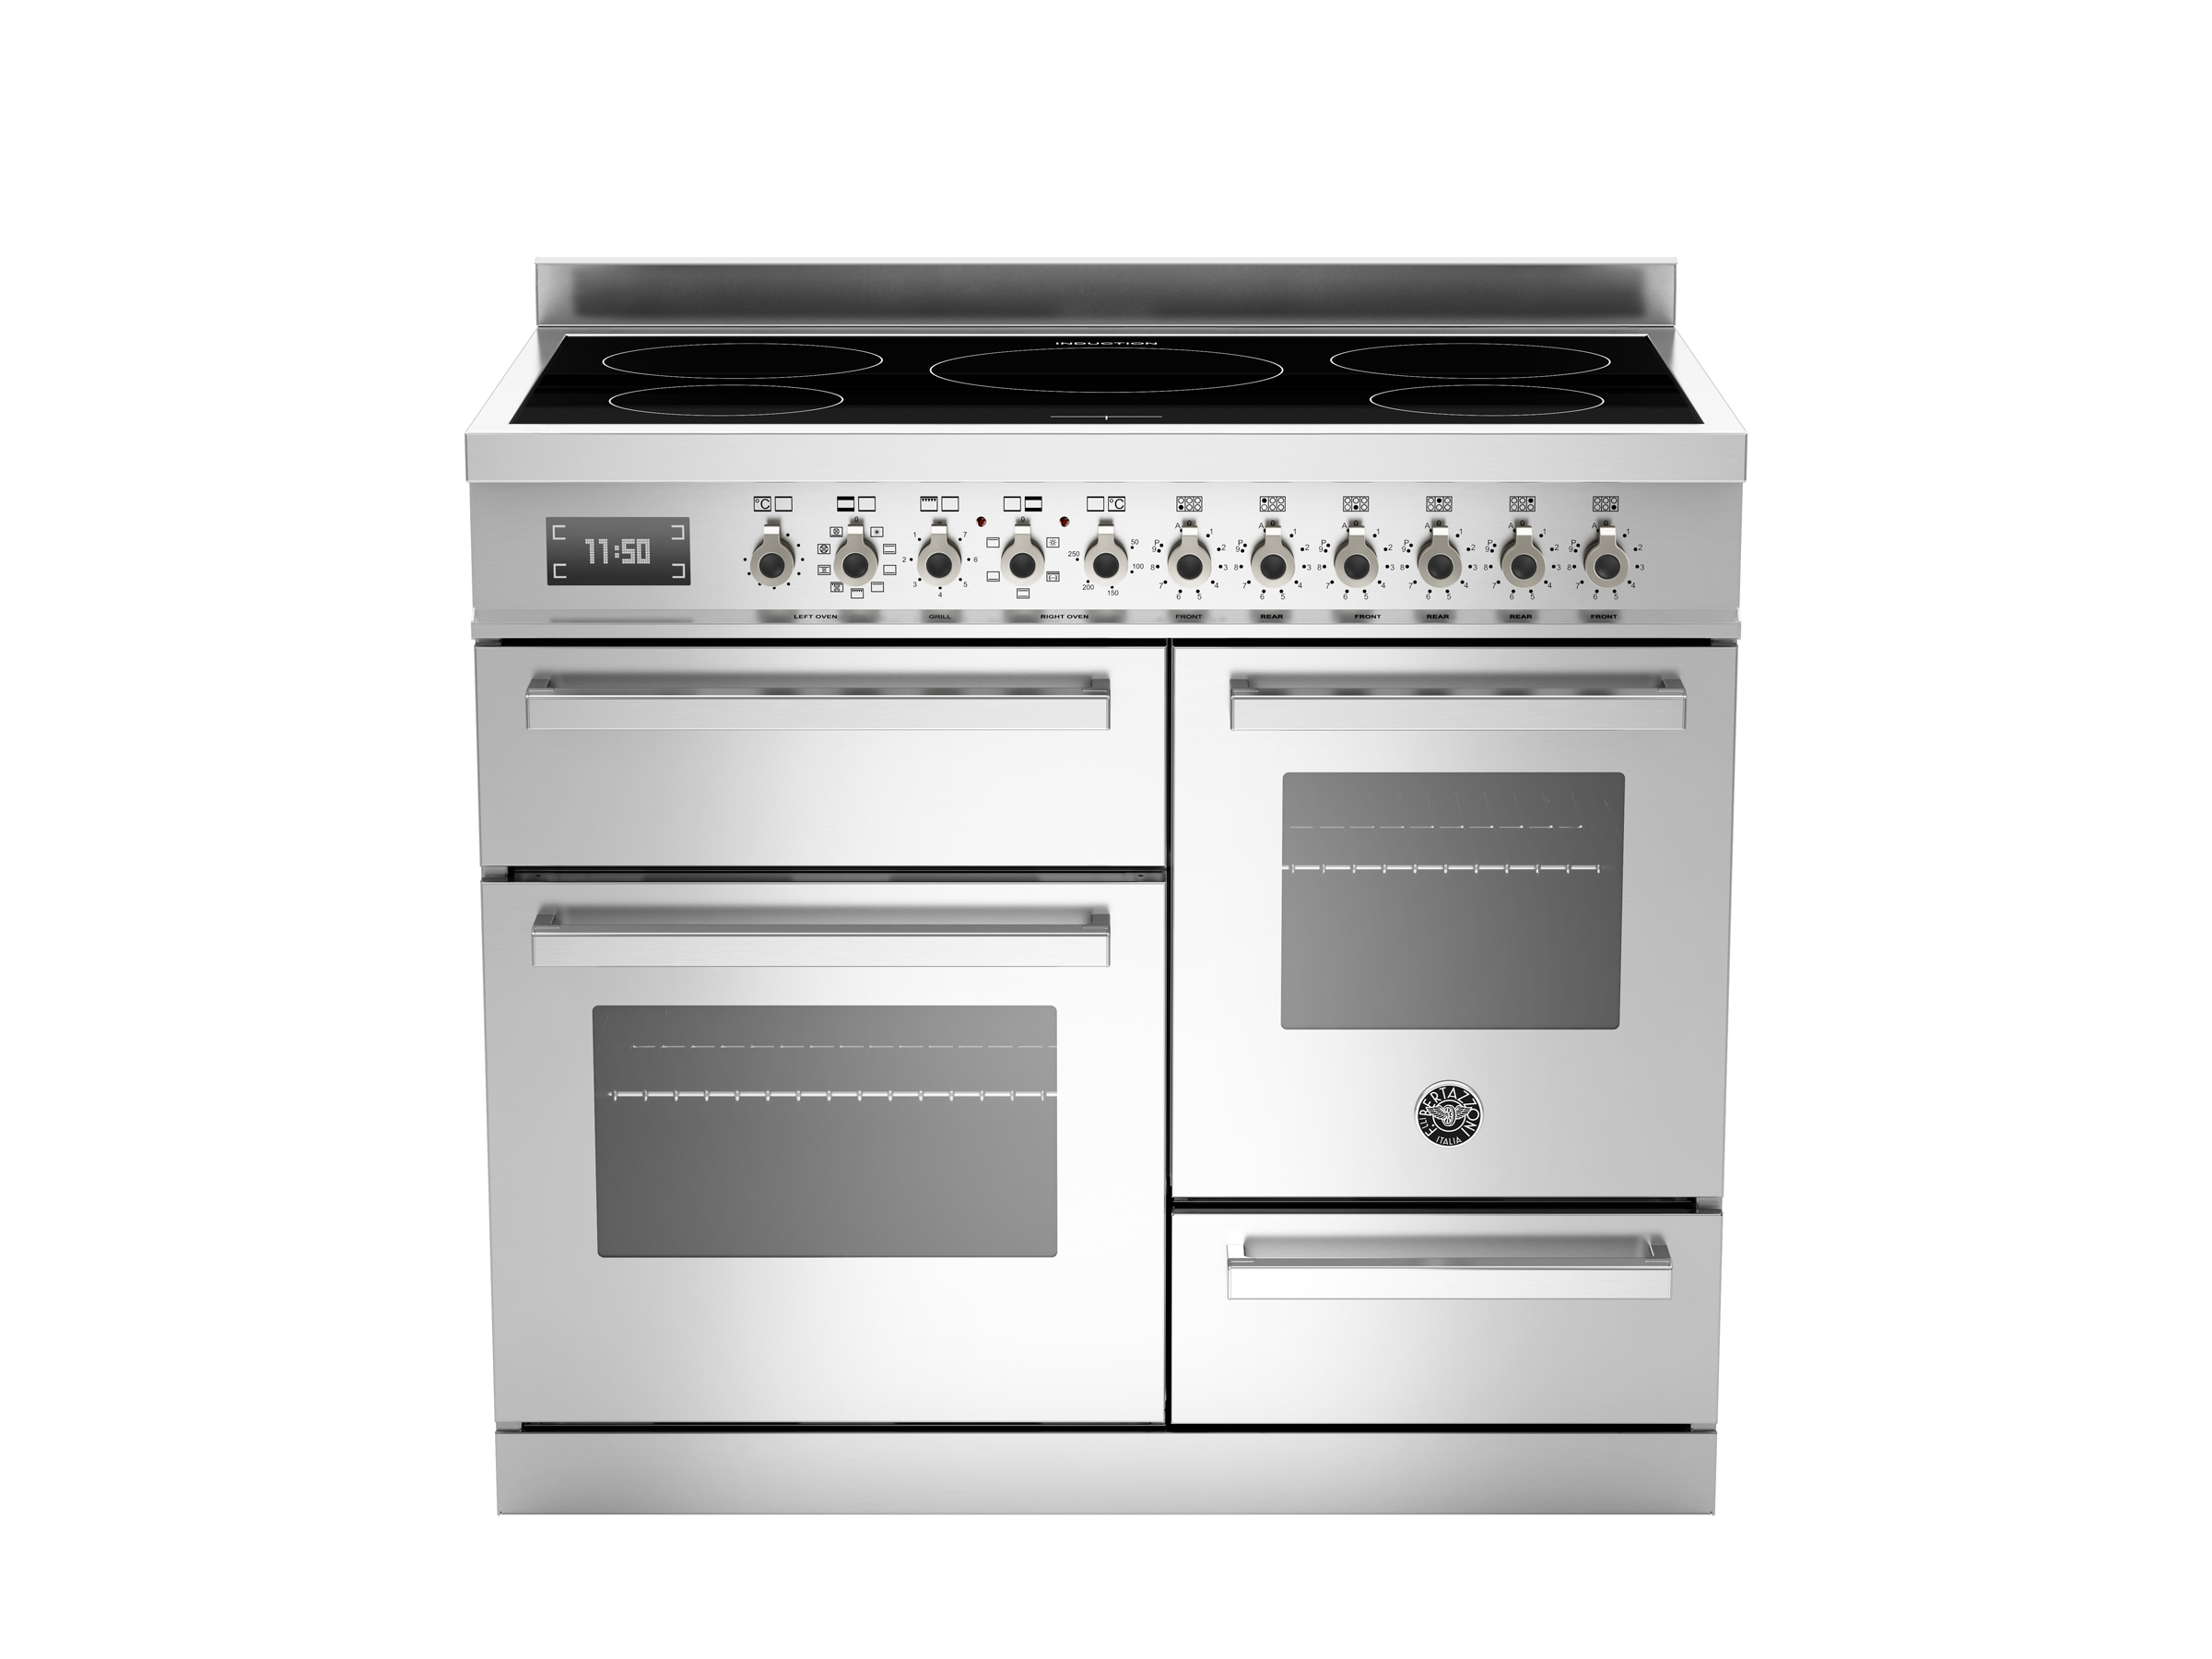 100 cm induction top electric triple oven | Bertazzoni - Stainless